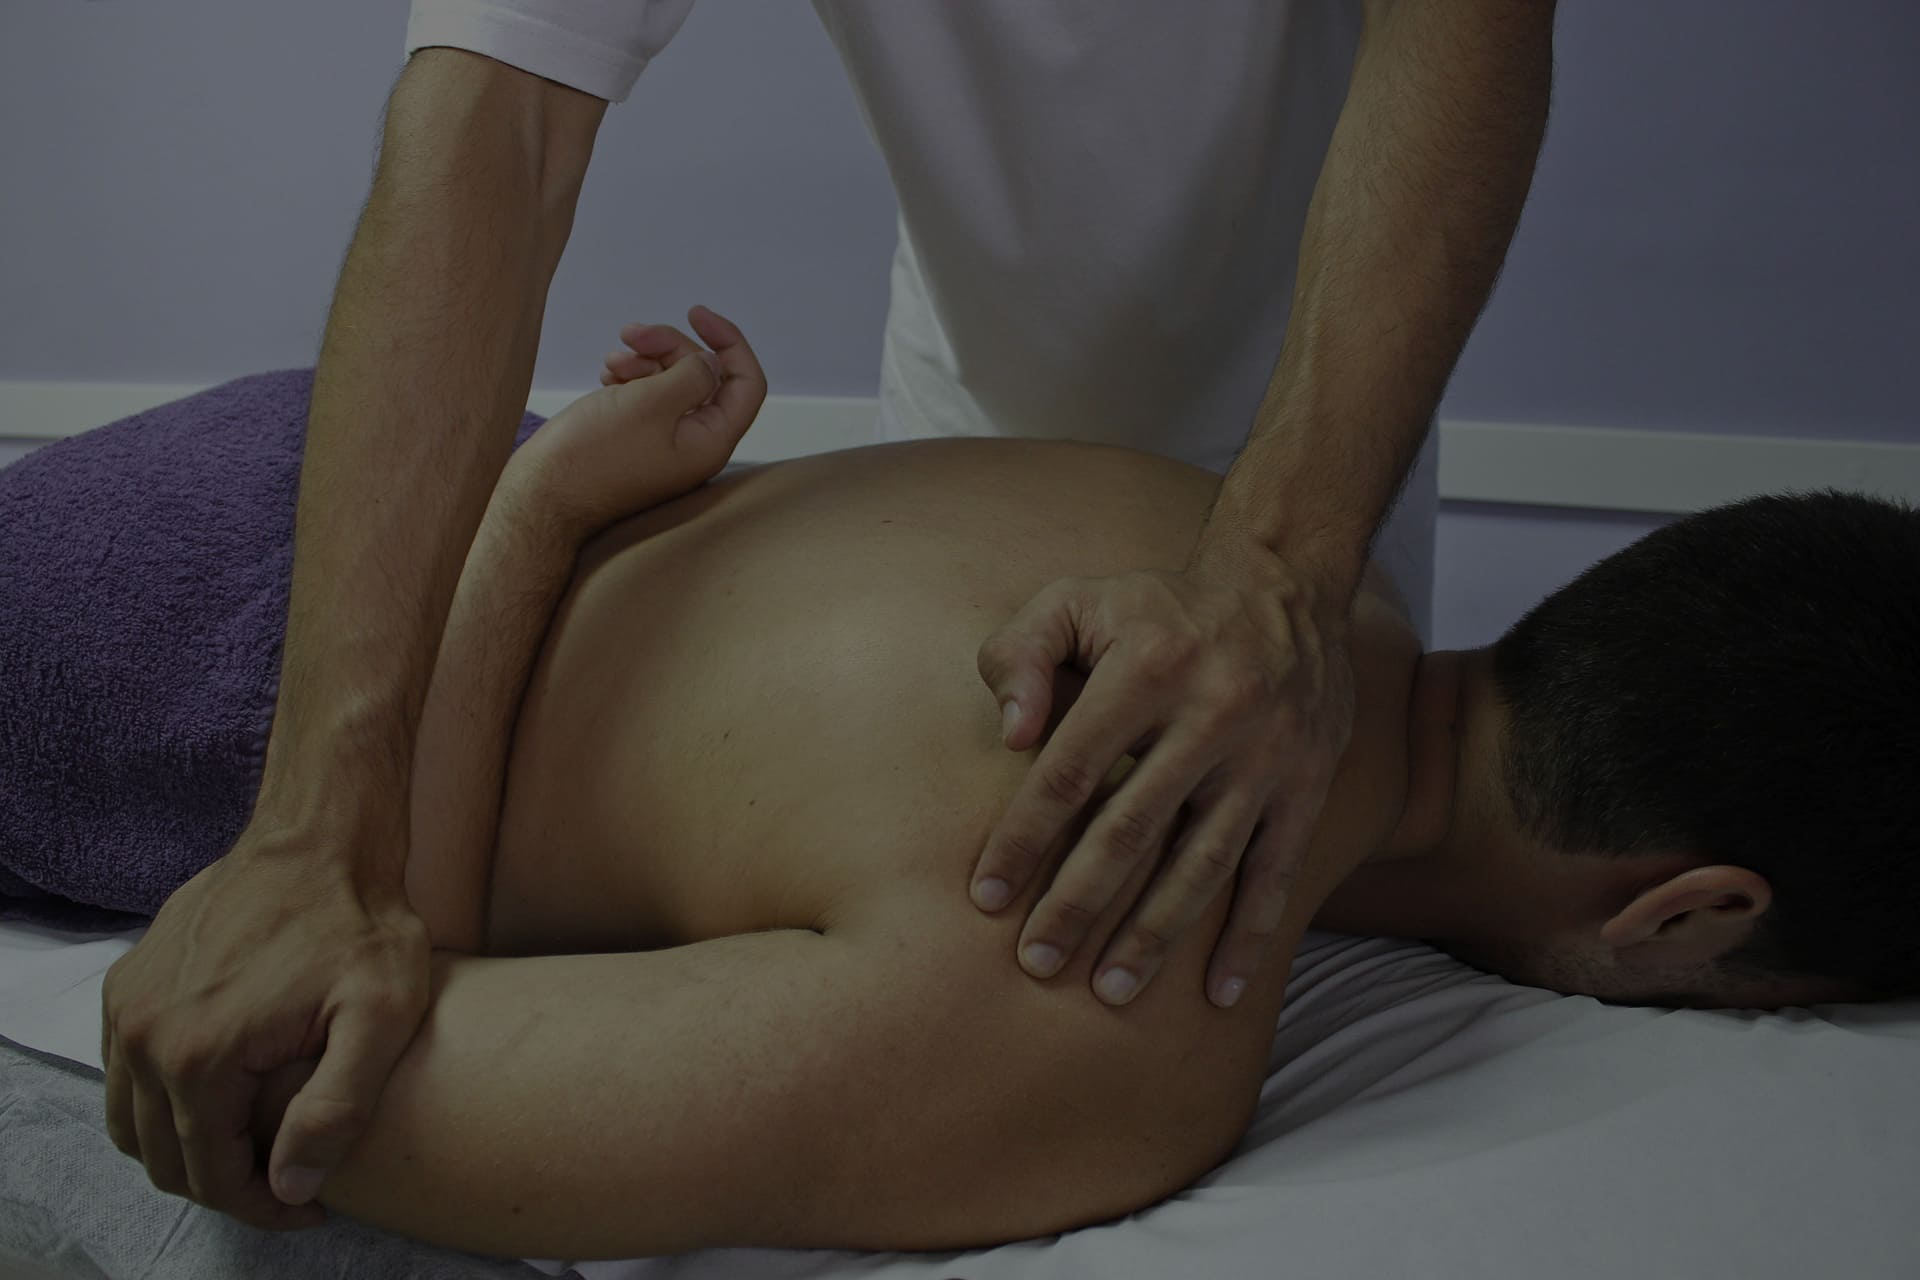 Physiotherapy and Massage Therapy at Medicine in Motion